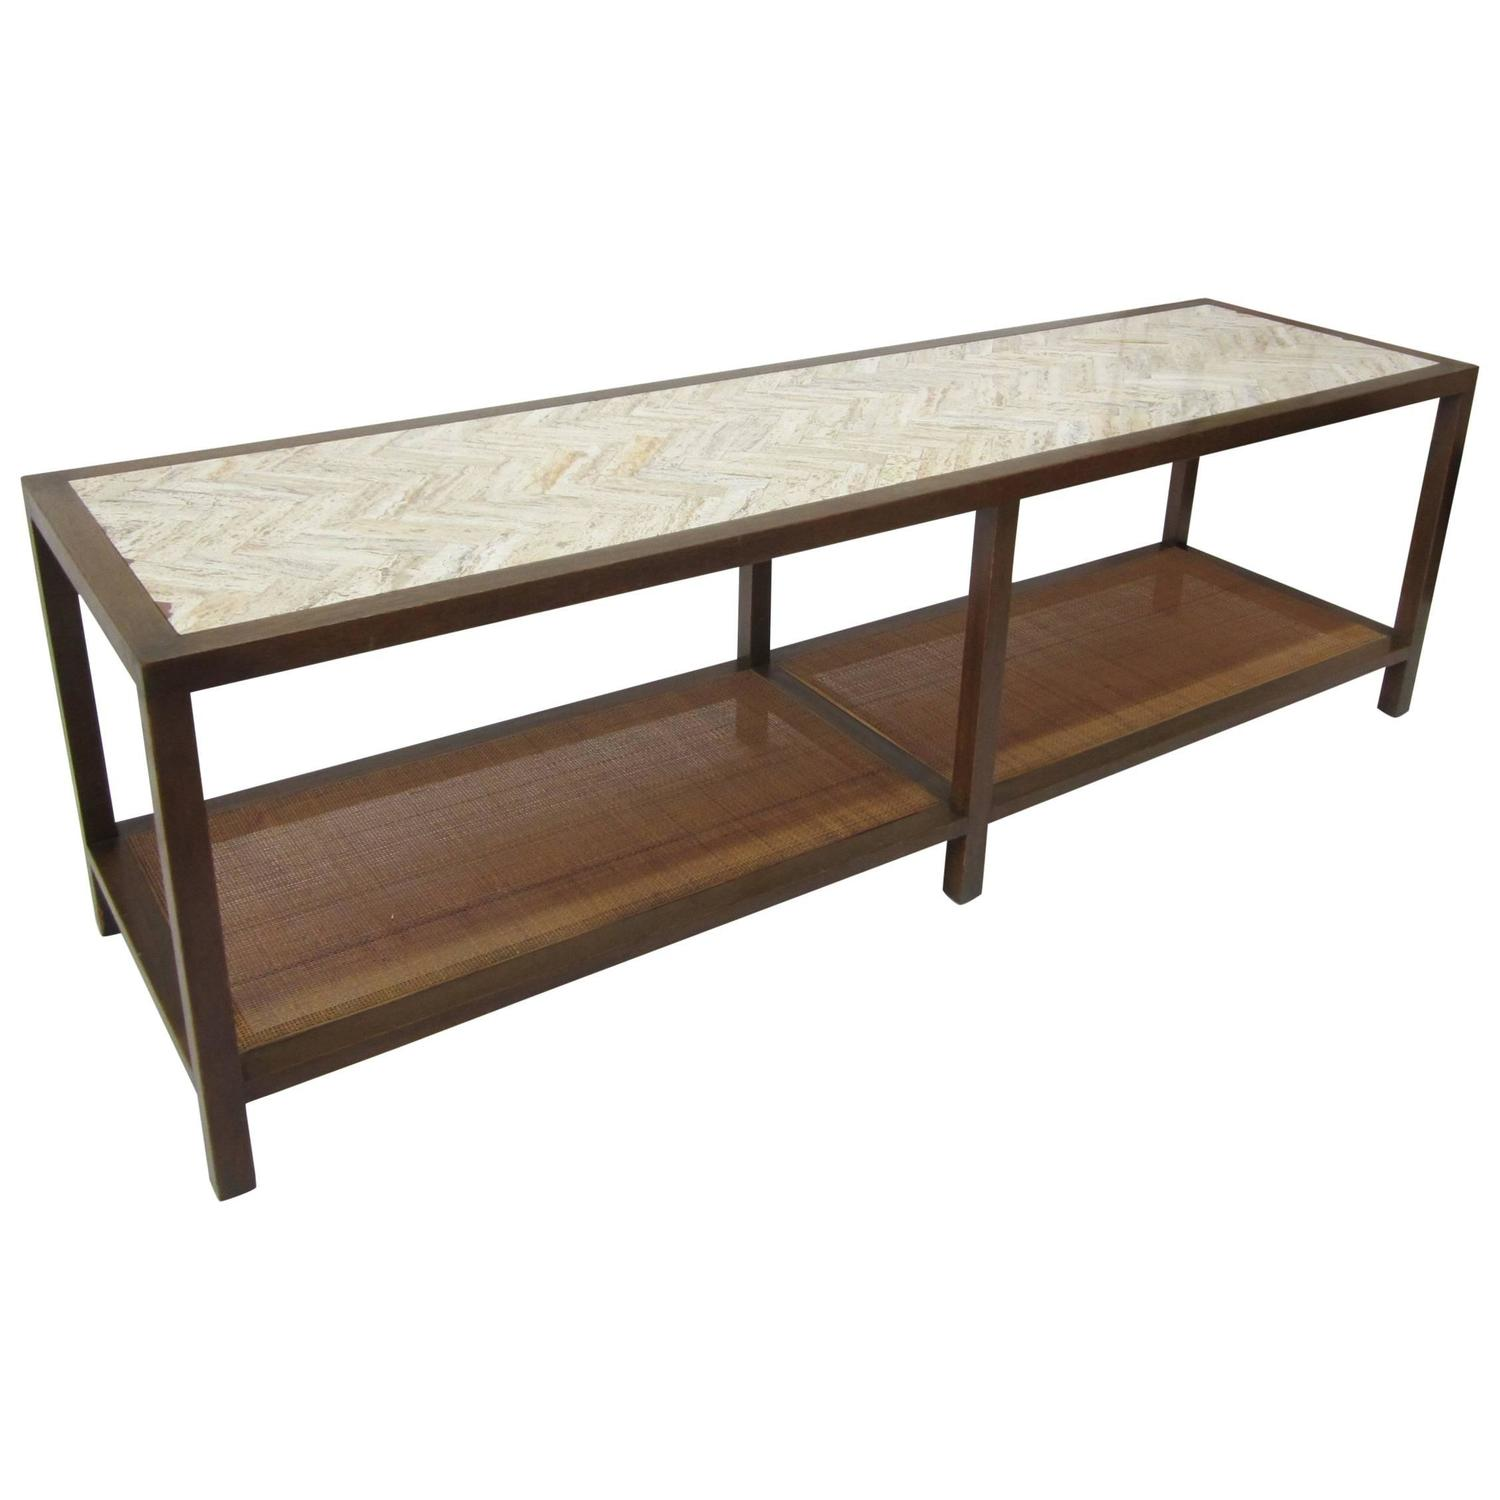 Harvey Probber Chevron Travertine and Cane Cocktail Table Bench